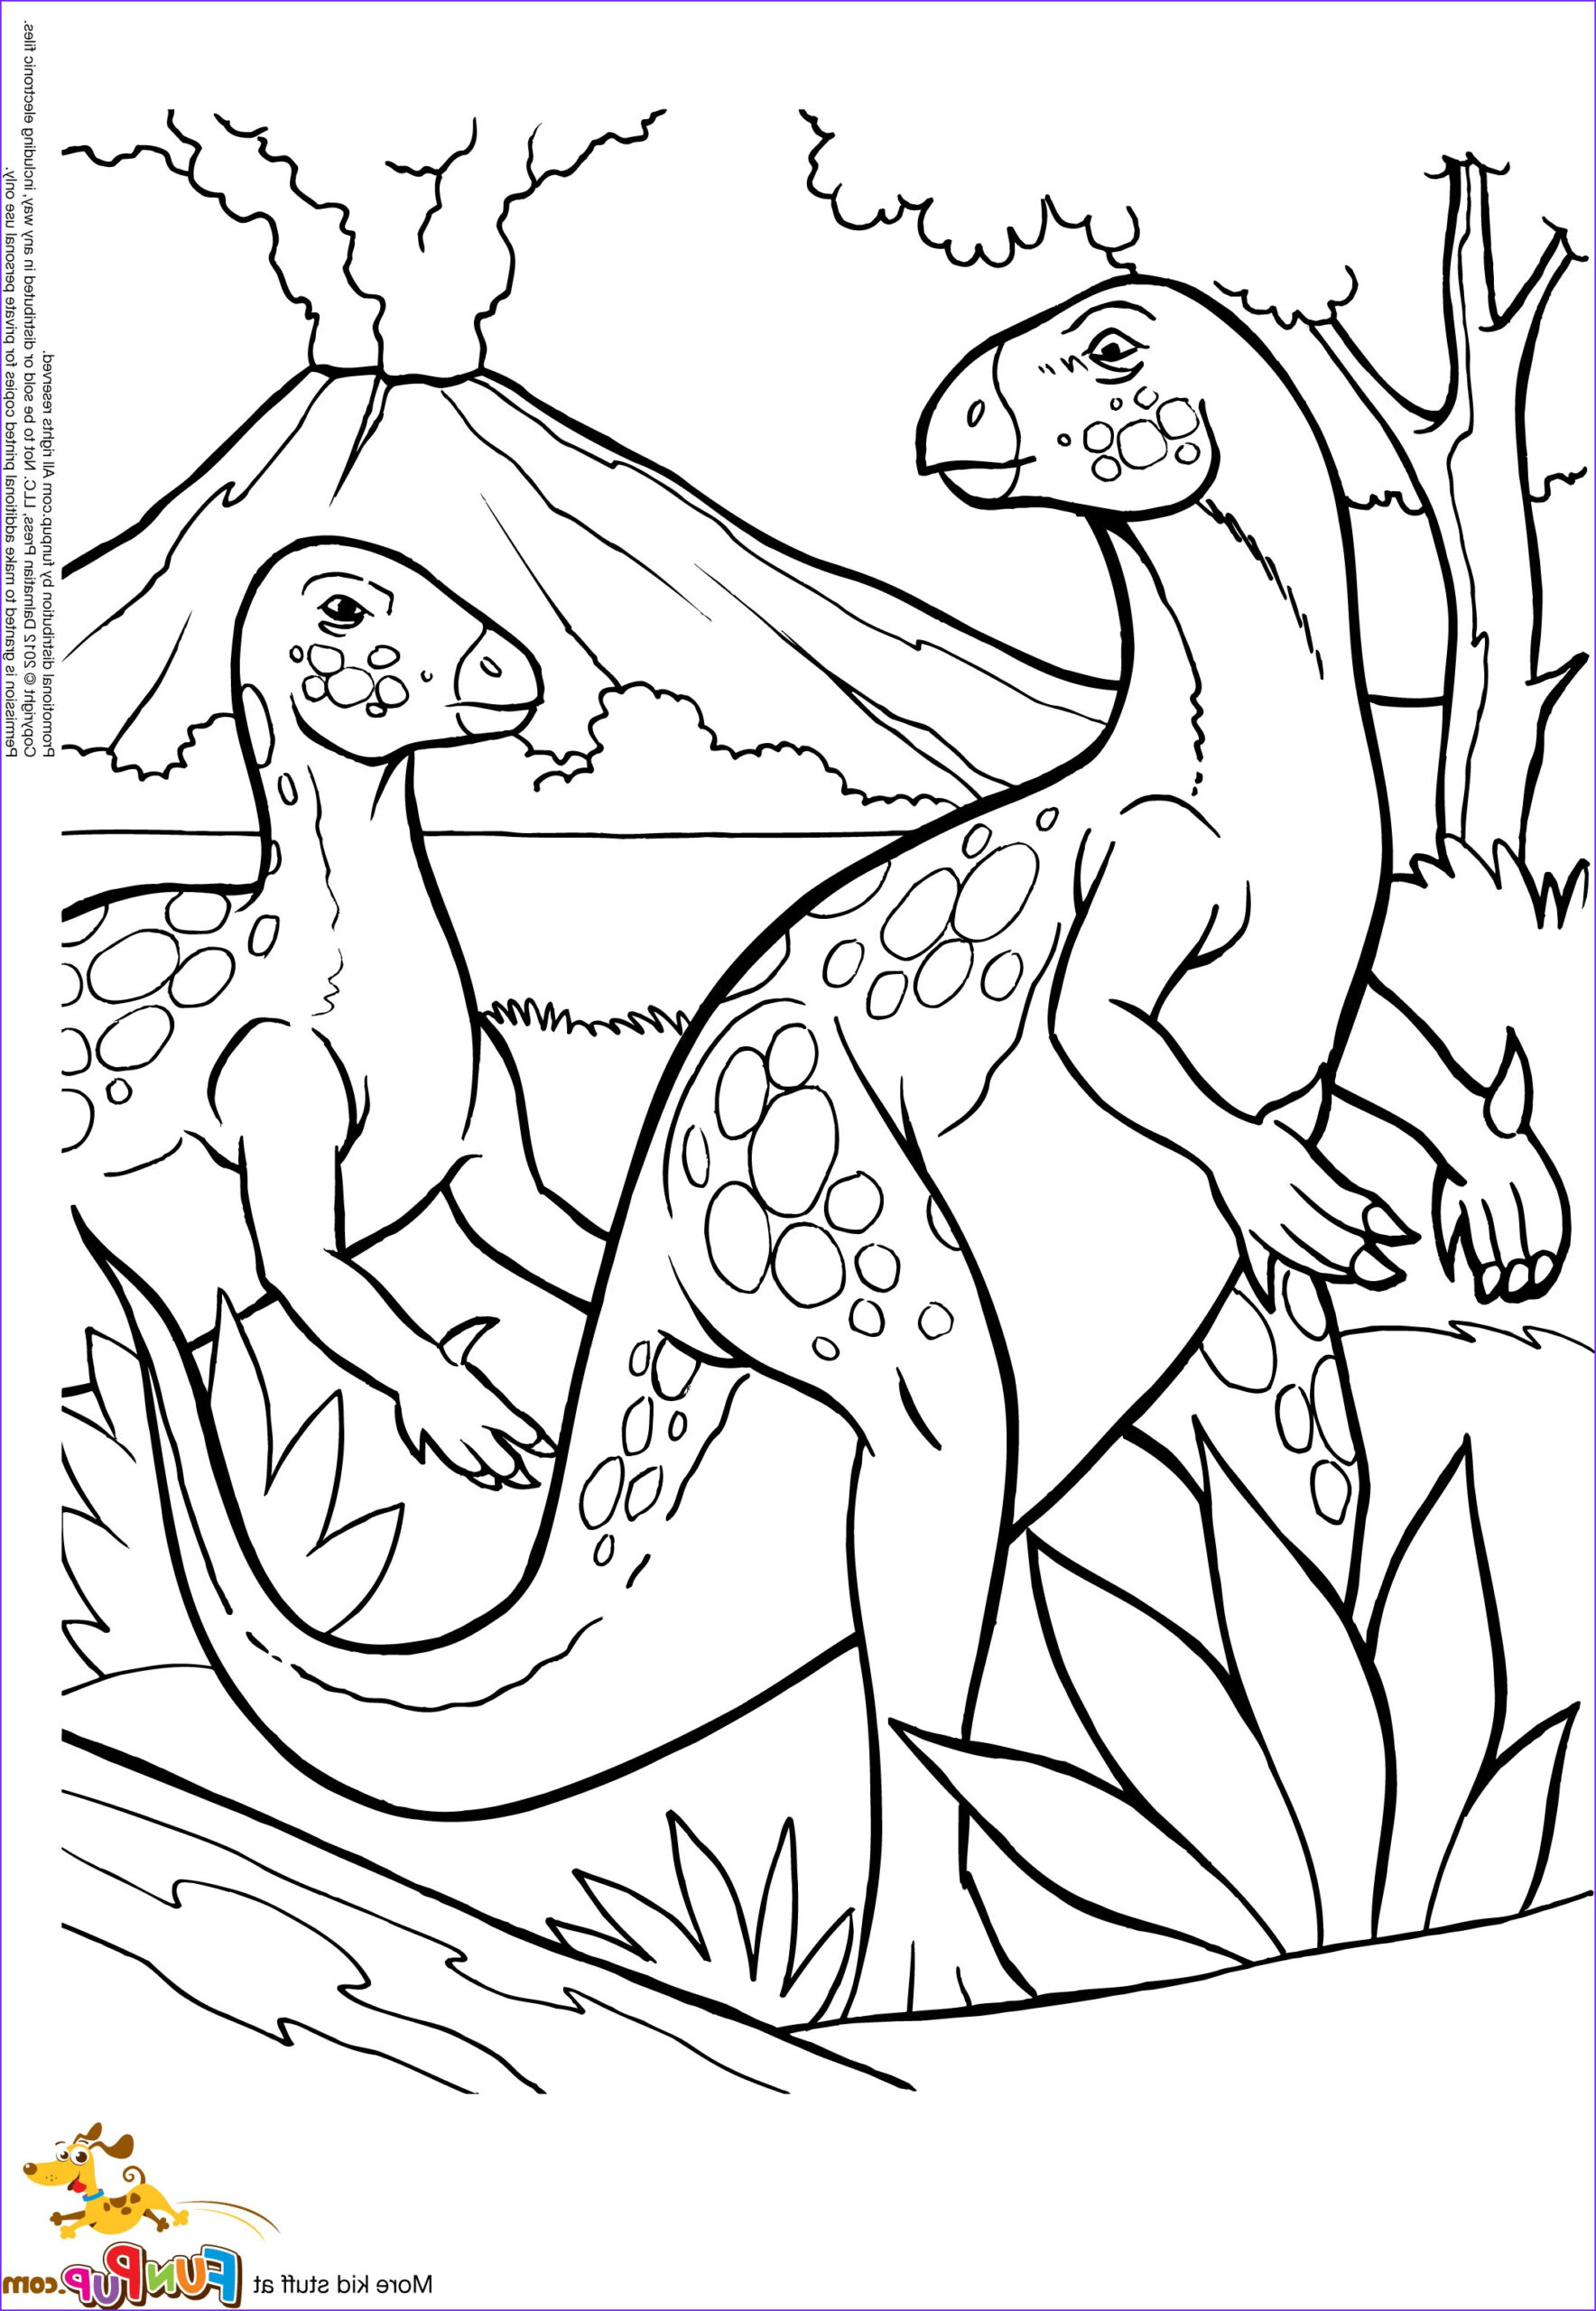 Coloring Gallery Unique Stock Volcano Coloring Pages for Kids Coloring Home